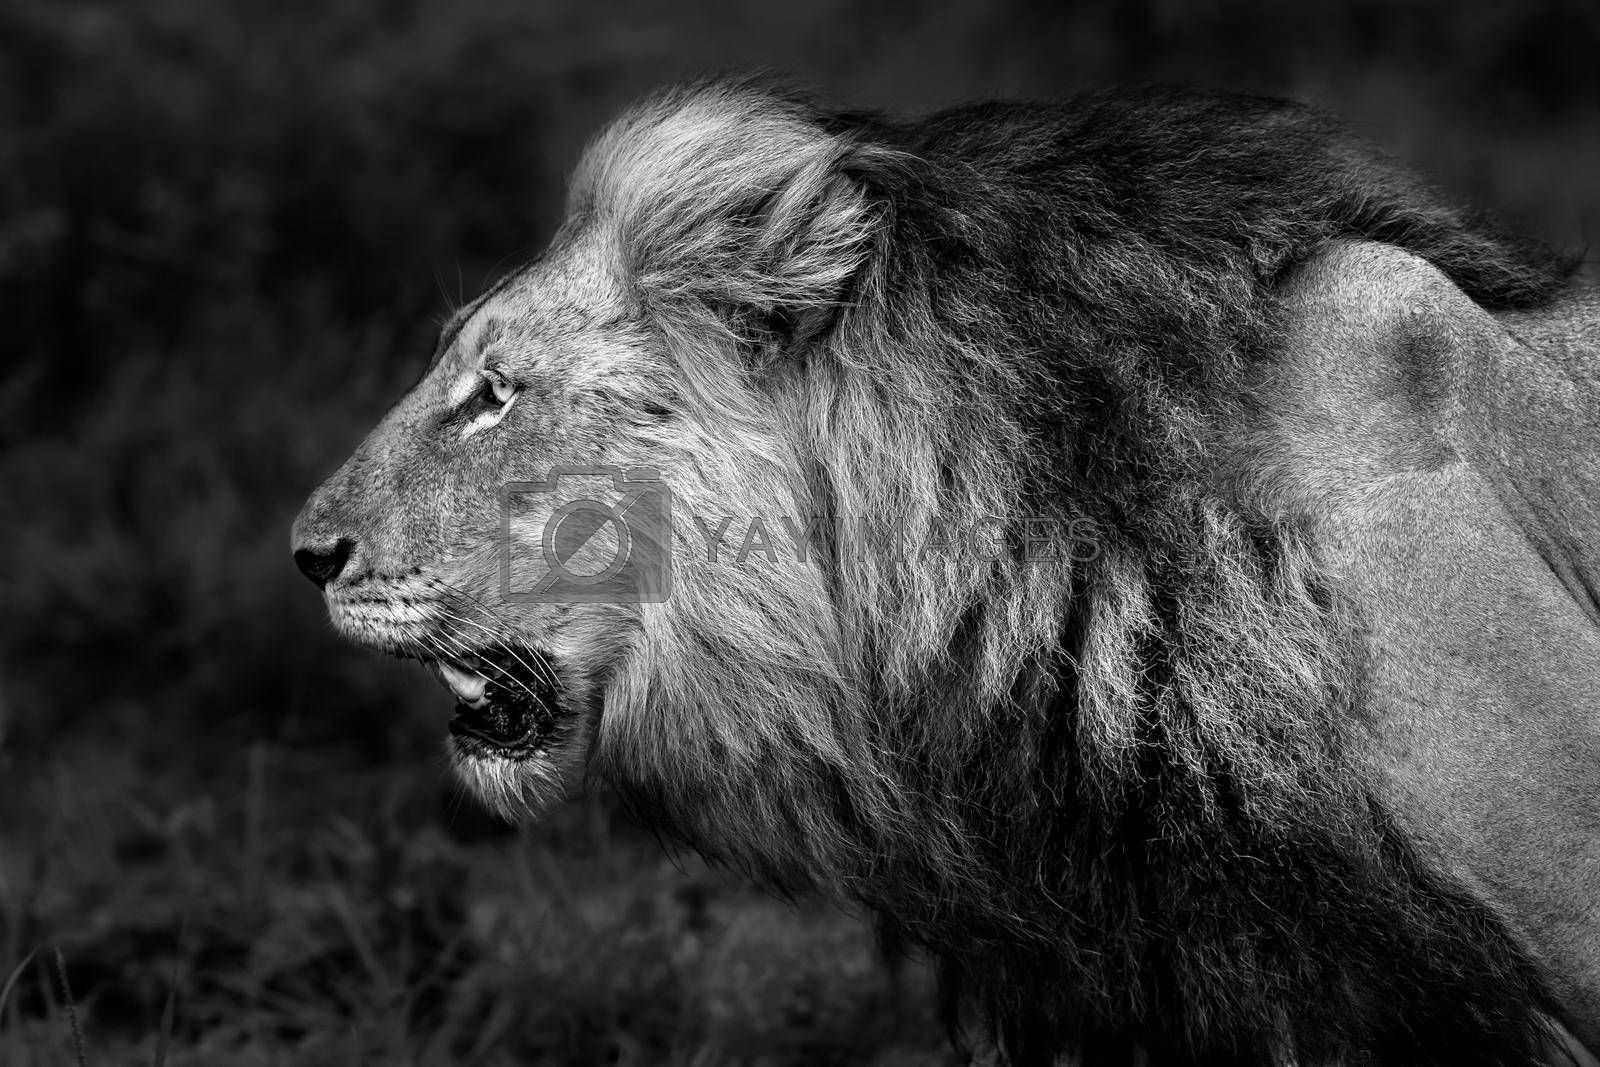 Black and White Photo of a Big Angry Roaring Lion. Profile Portrait of the King of the Jungle. Big Five. Safari Game Drive. Wild Animals of South Africa.